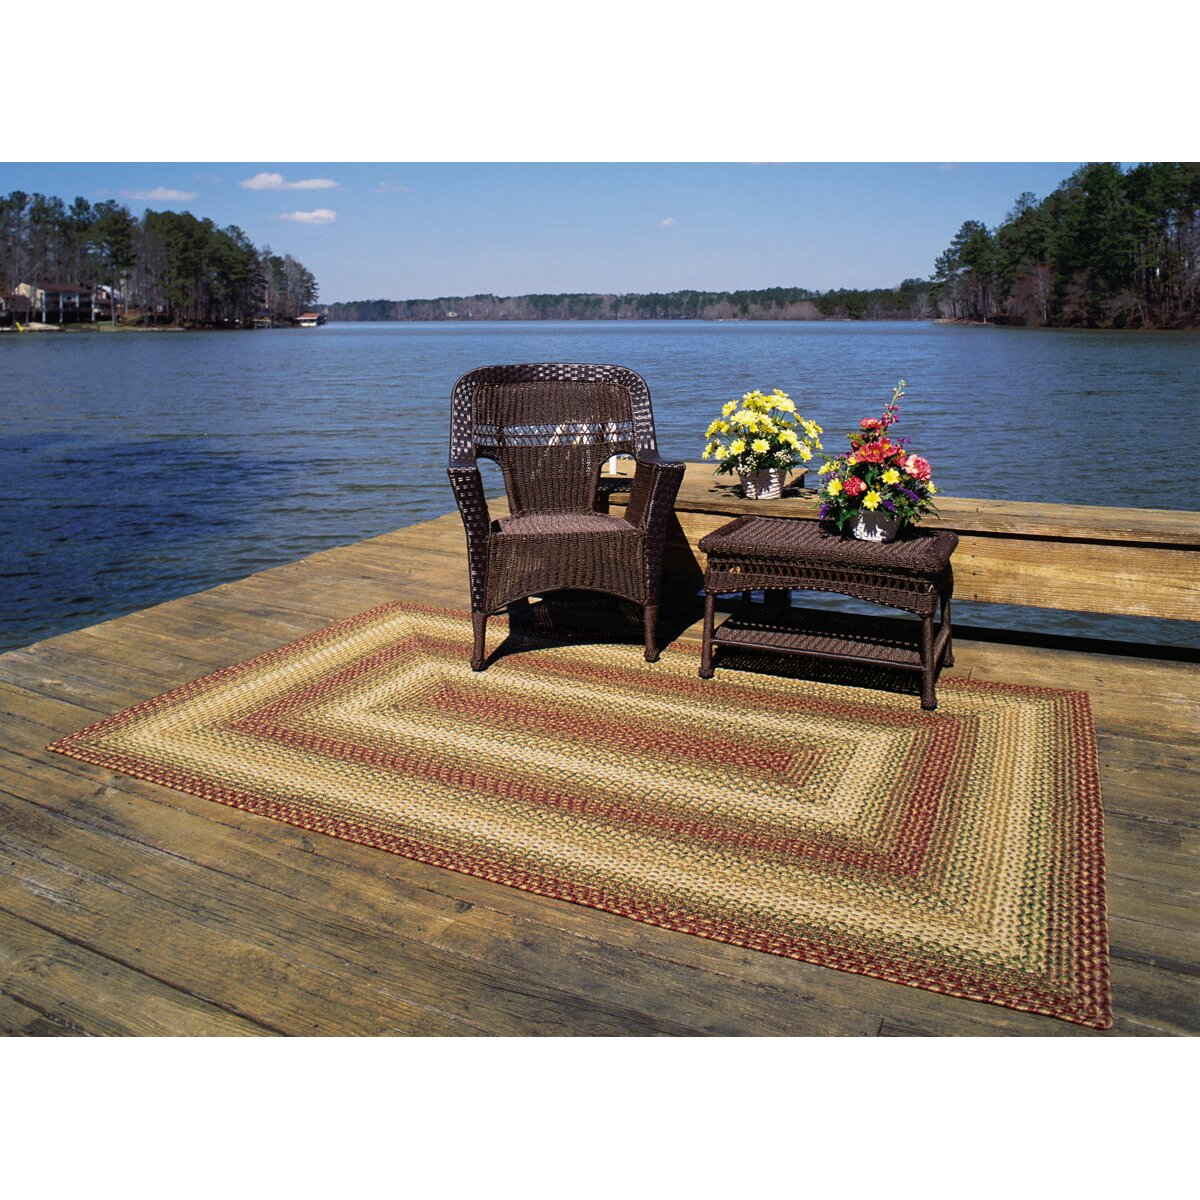 Garden Decor Nutty Rug: Homespice Decor Ultra-Durable Tuscany Indoor/Outdoor Rug